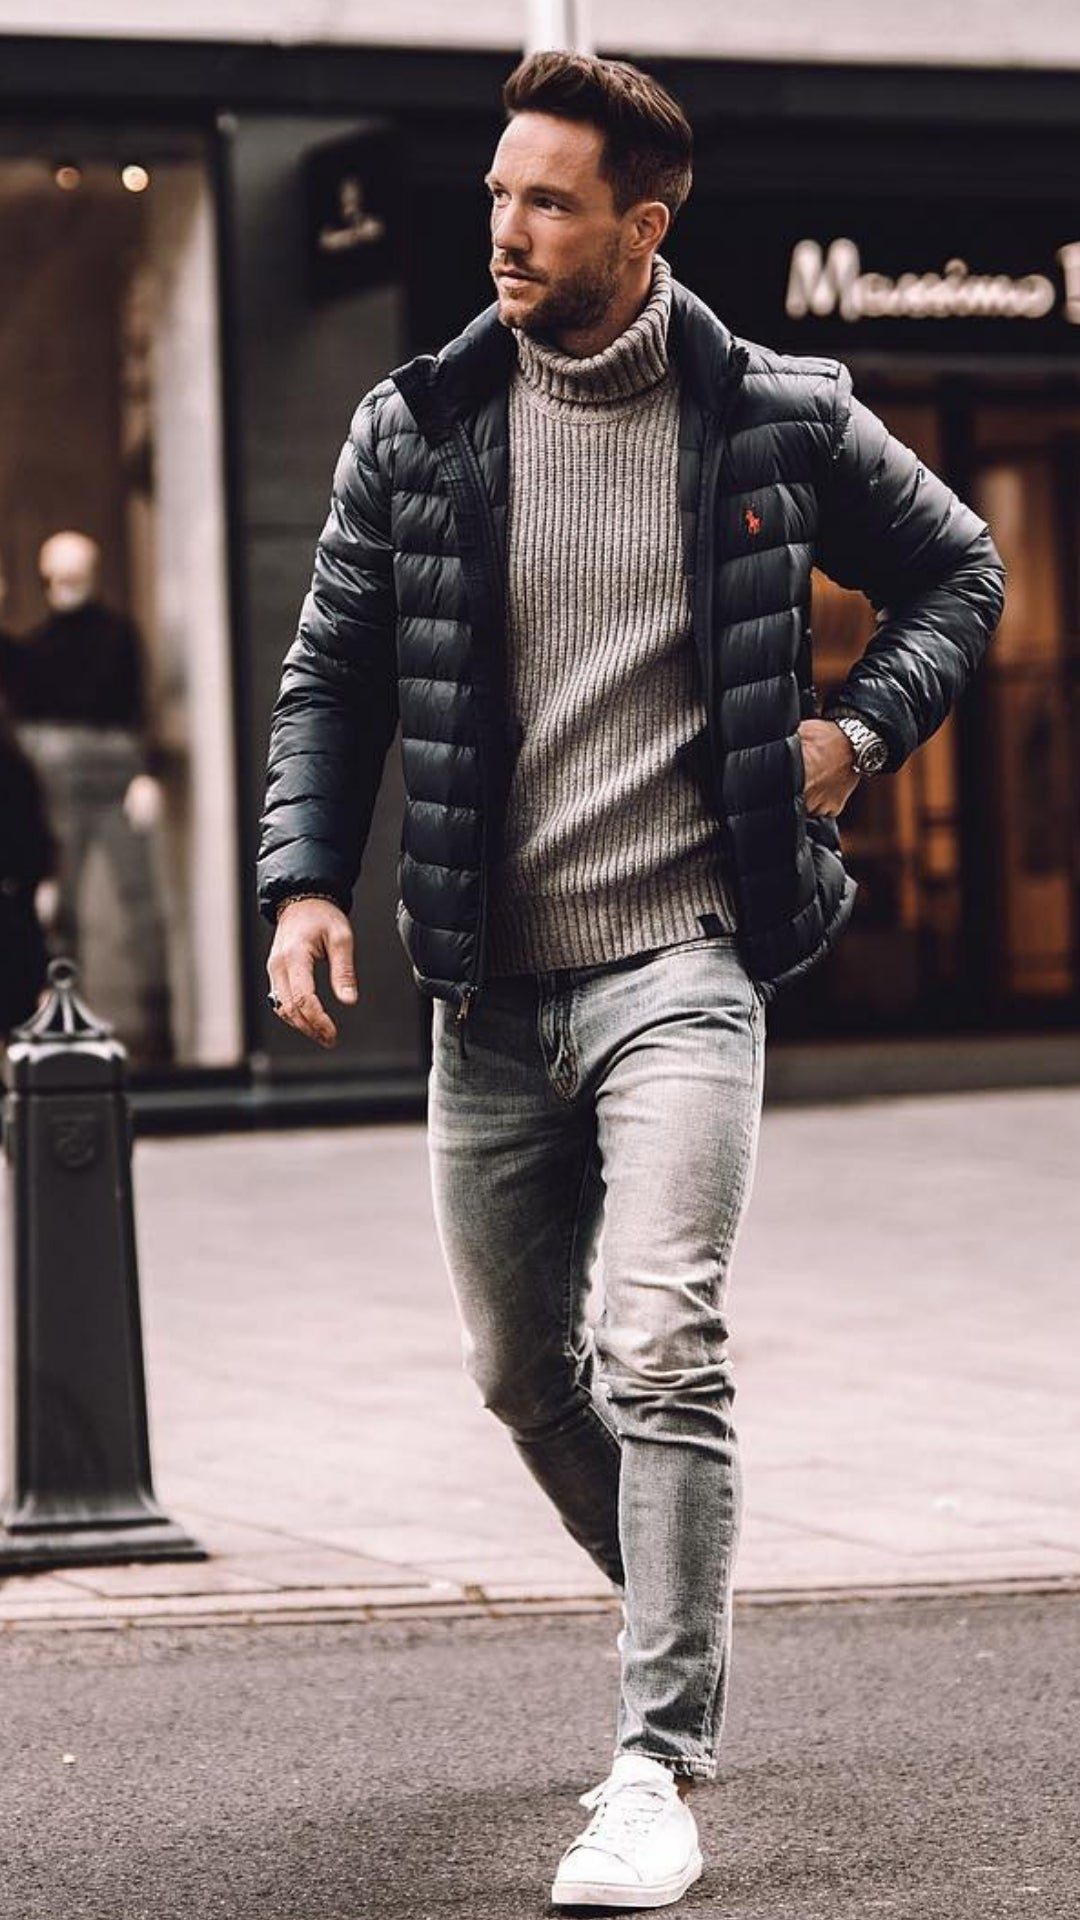 Fashion Winter style men pictures advise dress in summer in 2019